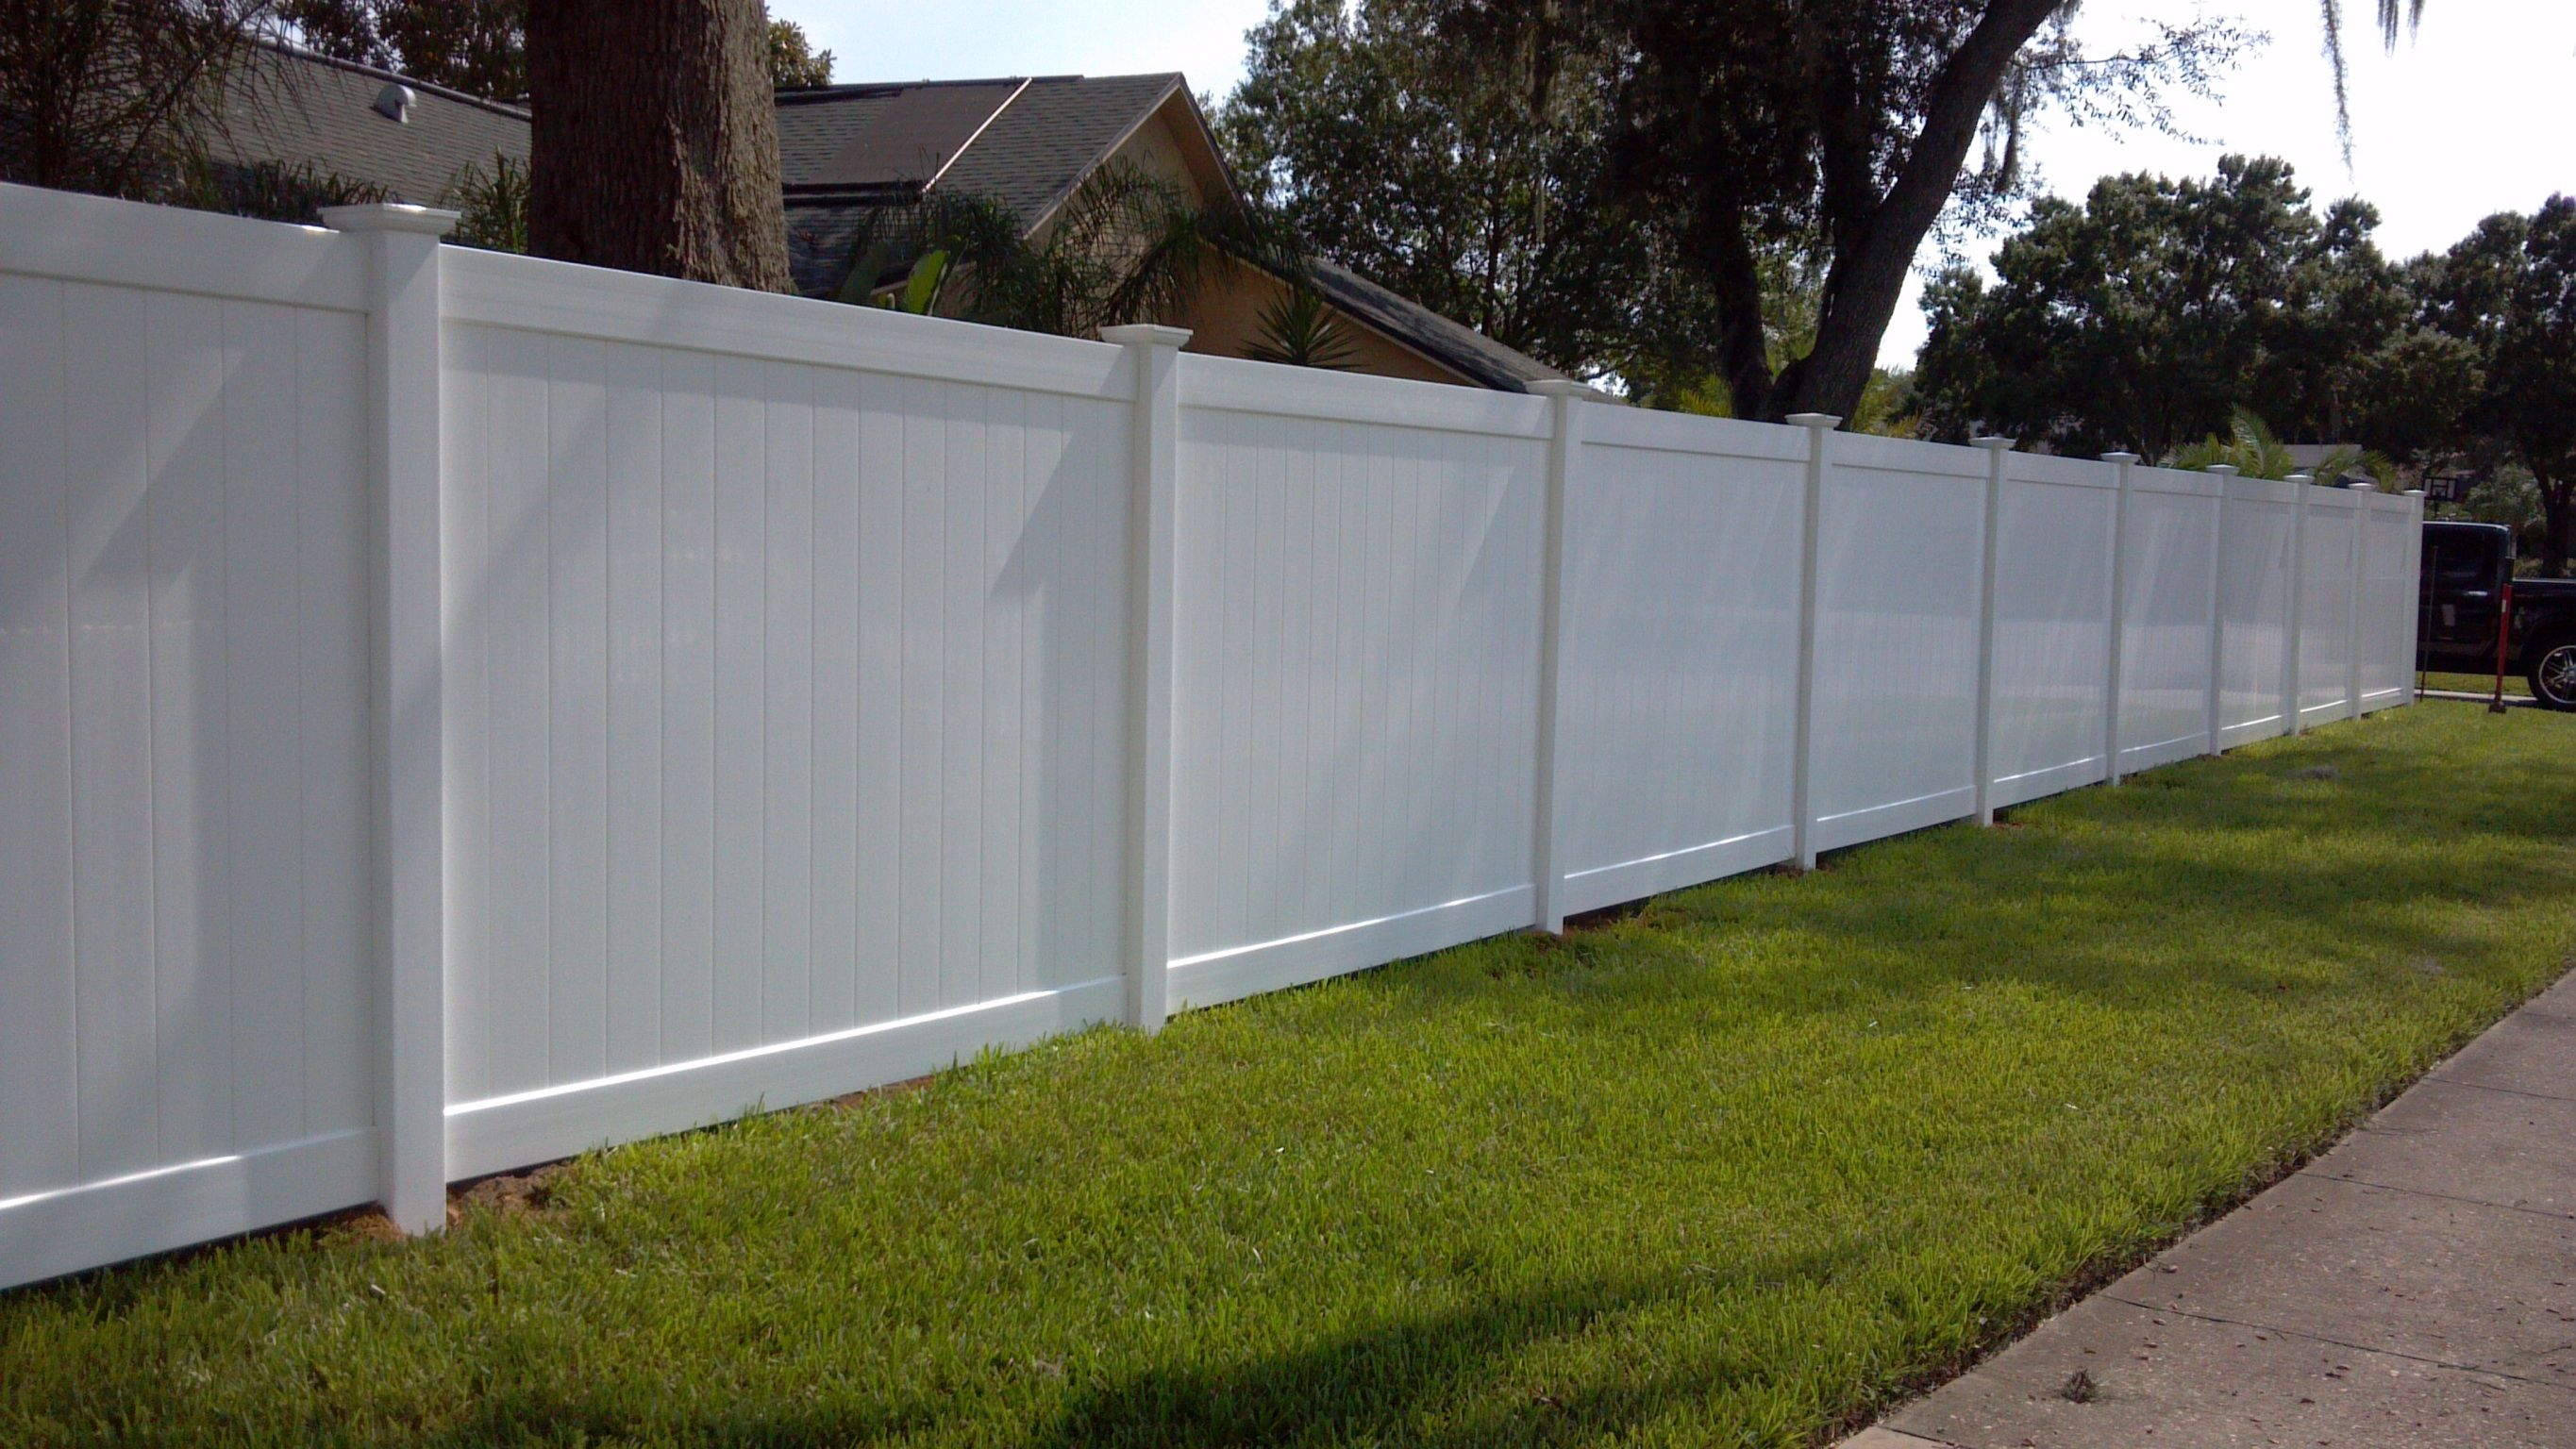 Outdoor yard vinyl fences prices cheap pvc wpc fence